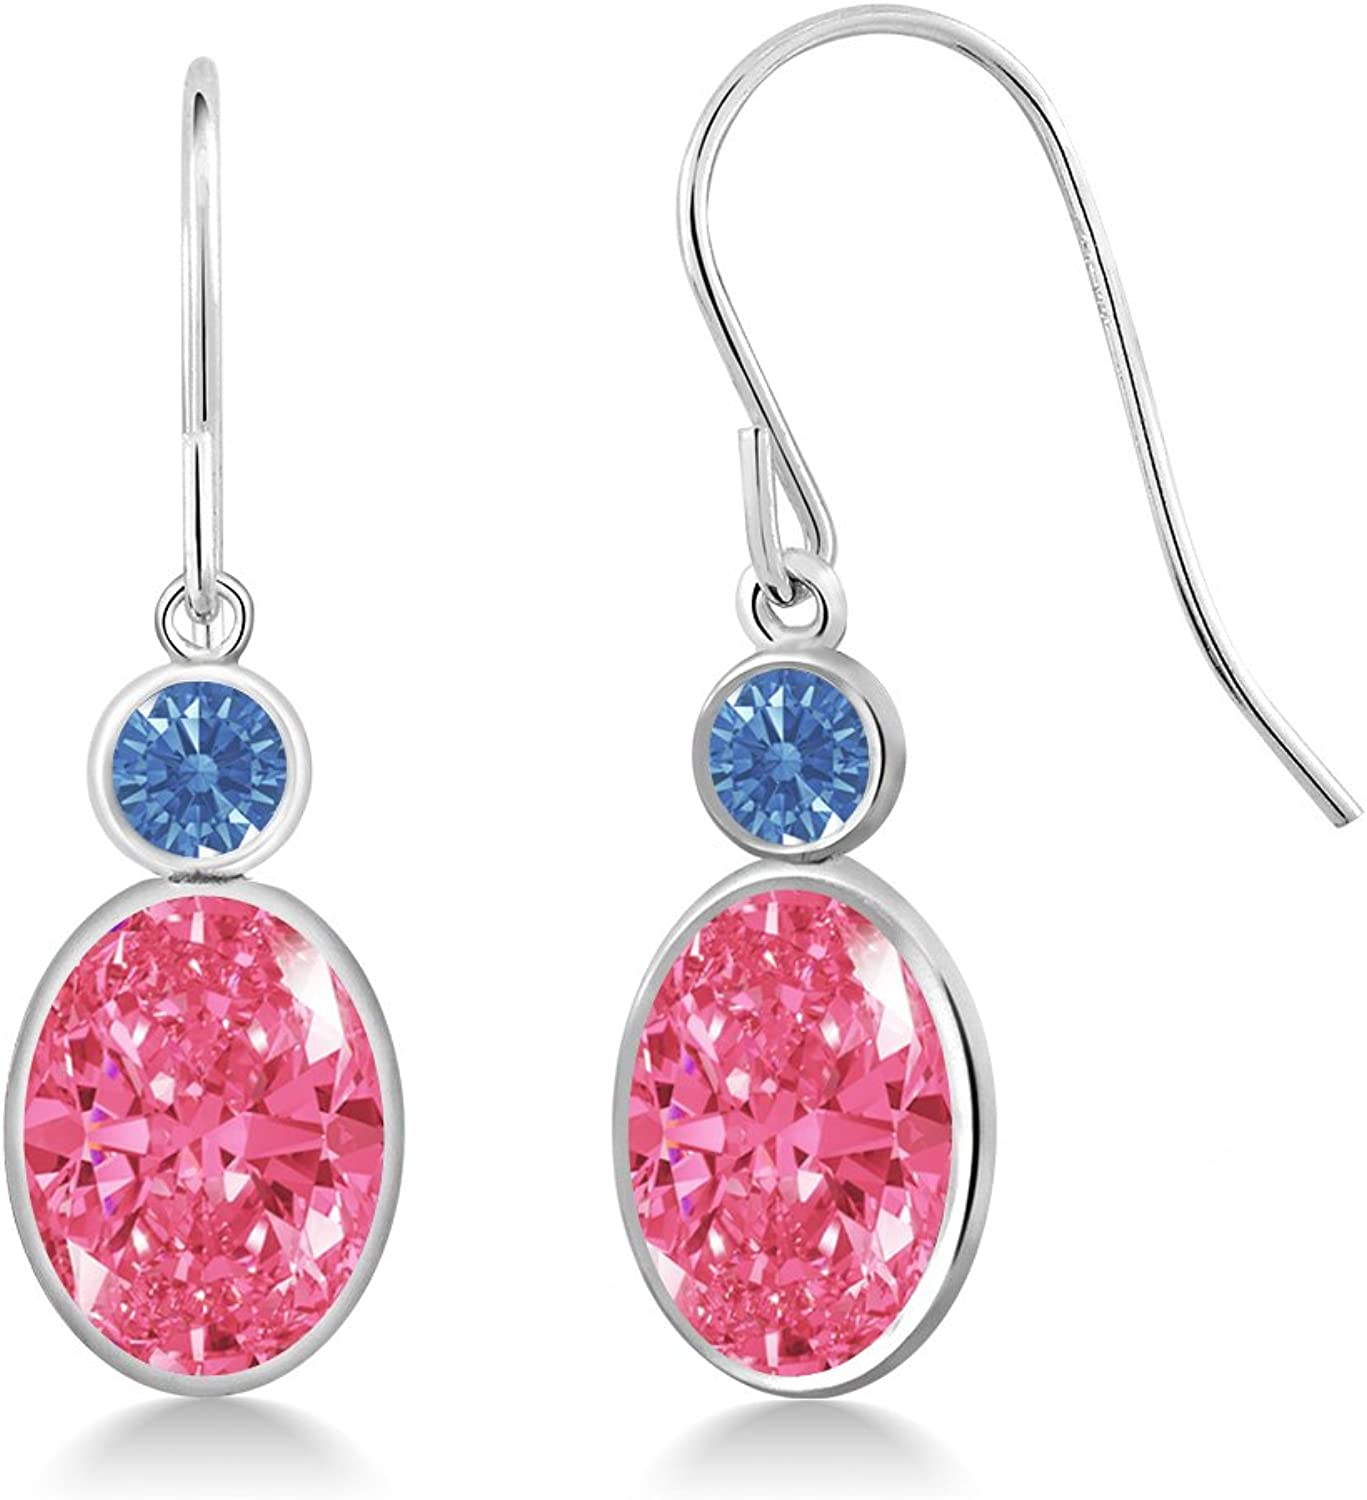 2.64 Ct Fancy Pink 14K White gold Earrings Made With Swarovski Zirconia